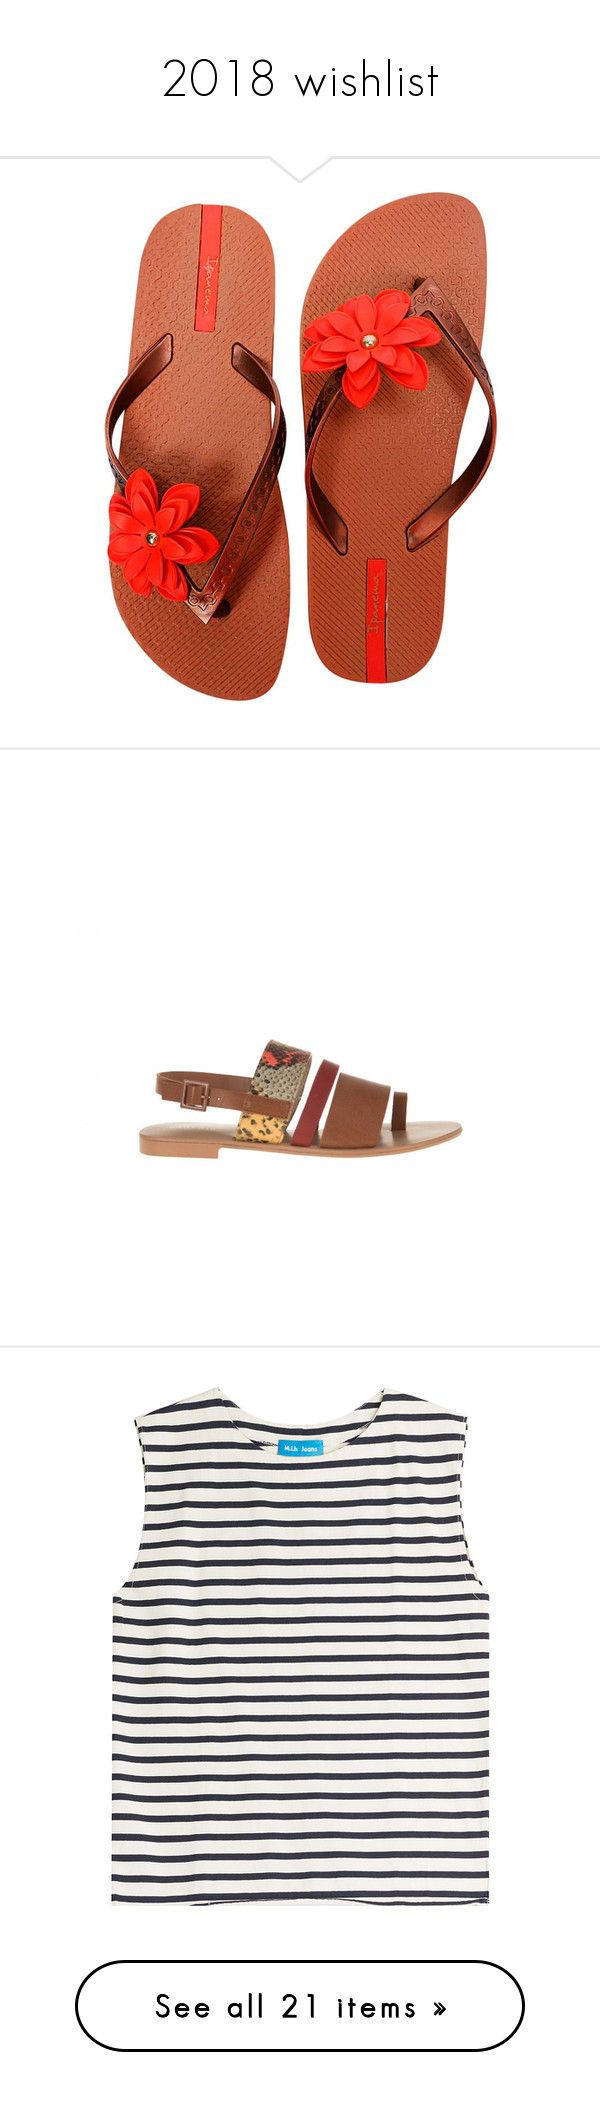 """2018 wishlist"" by misandovalgonza ❤ liked on Polyvore featuring shoes, sandals, flip flops, brown strappy sandals, red sandals, ipanema flip flops, thick strap sandals, red strap sandals, snake sandals and snake shoes"